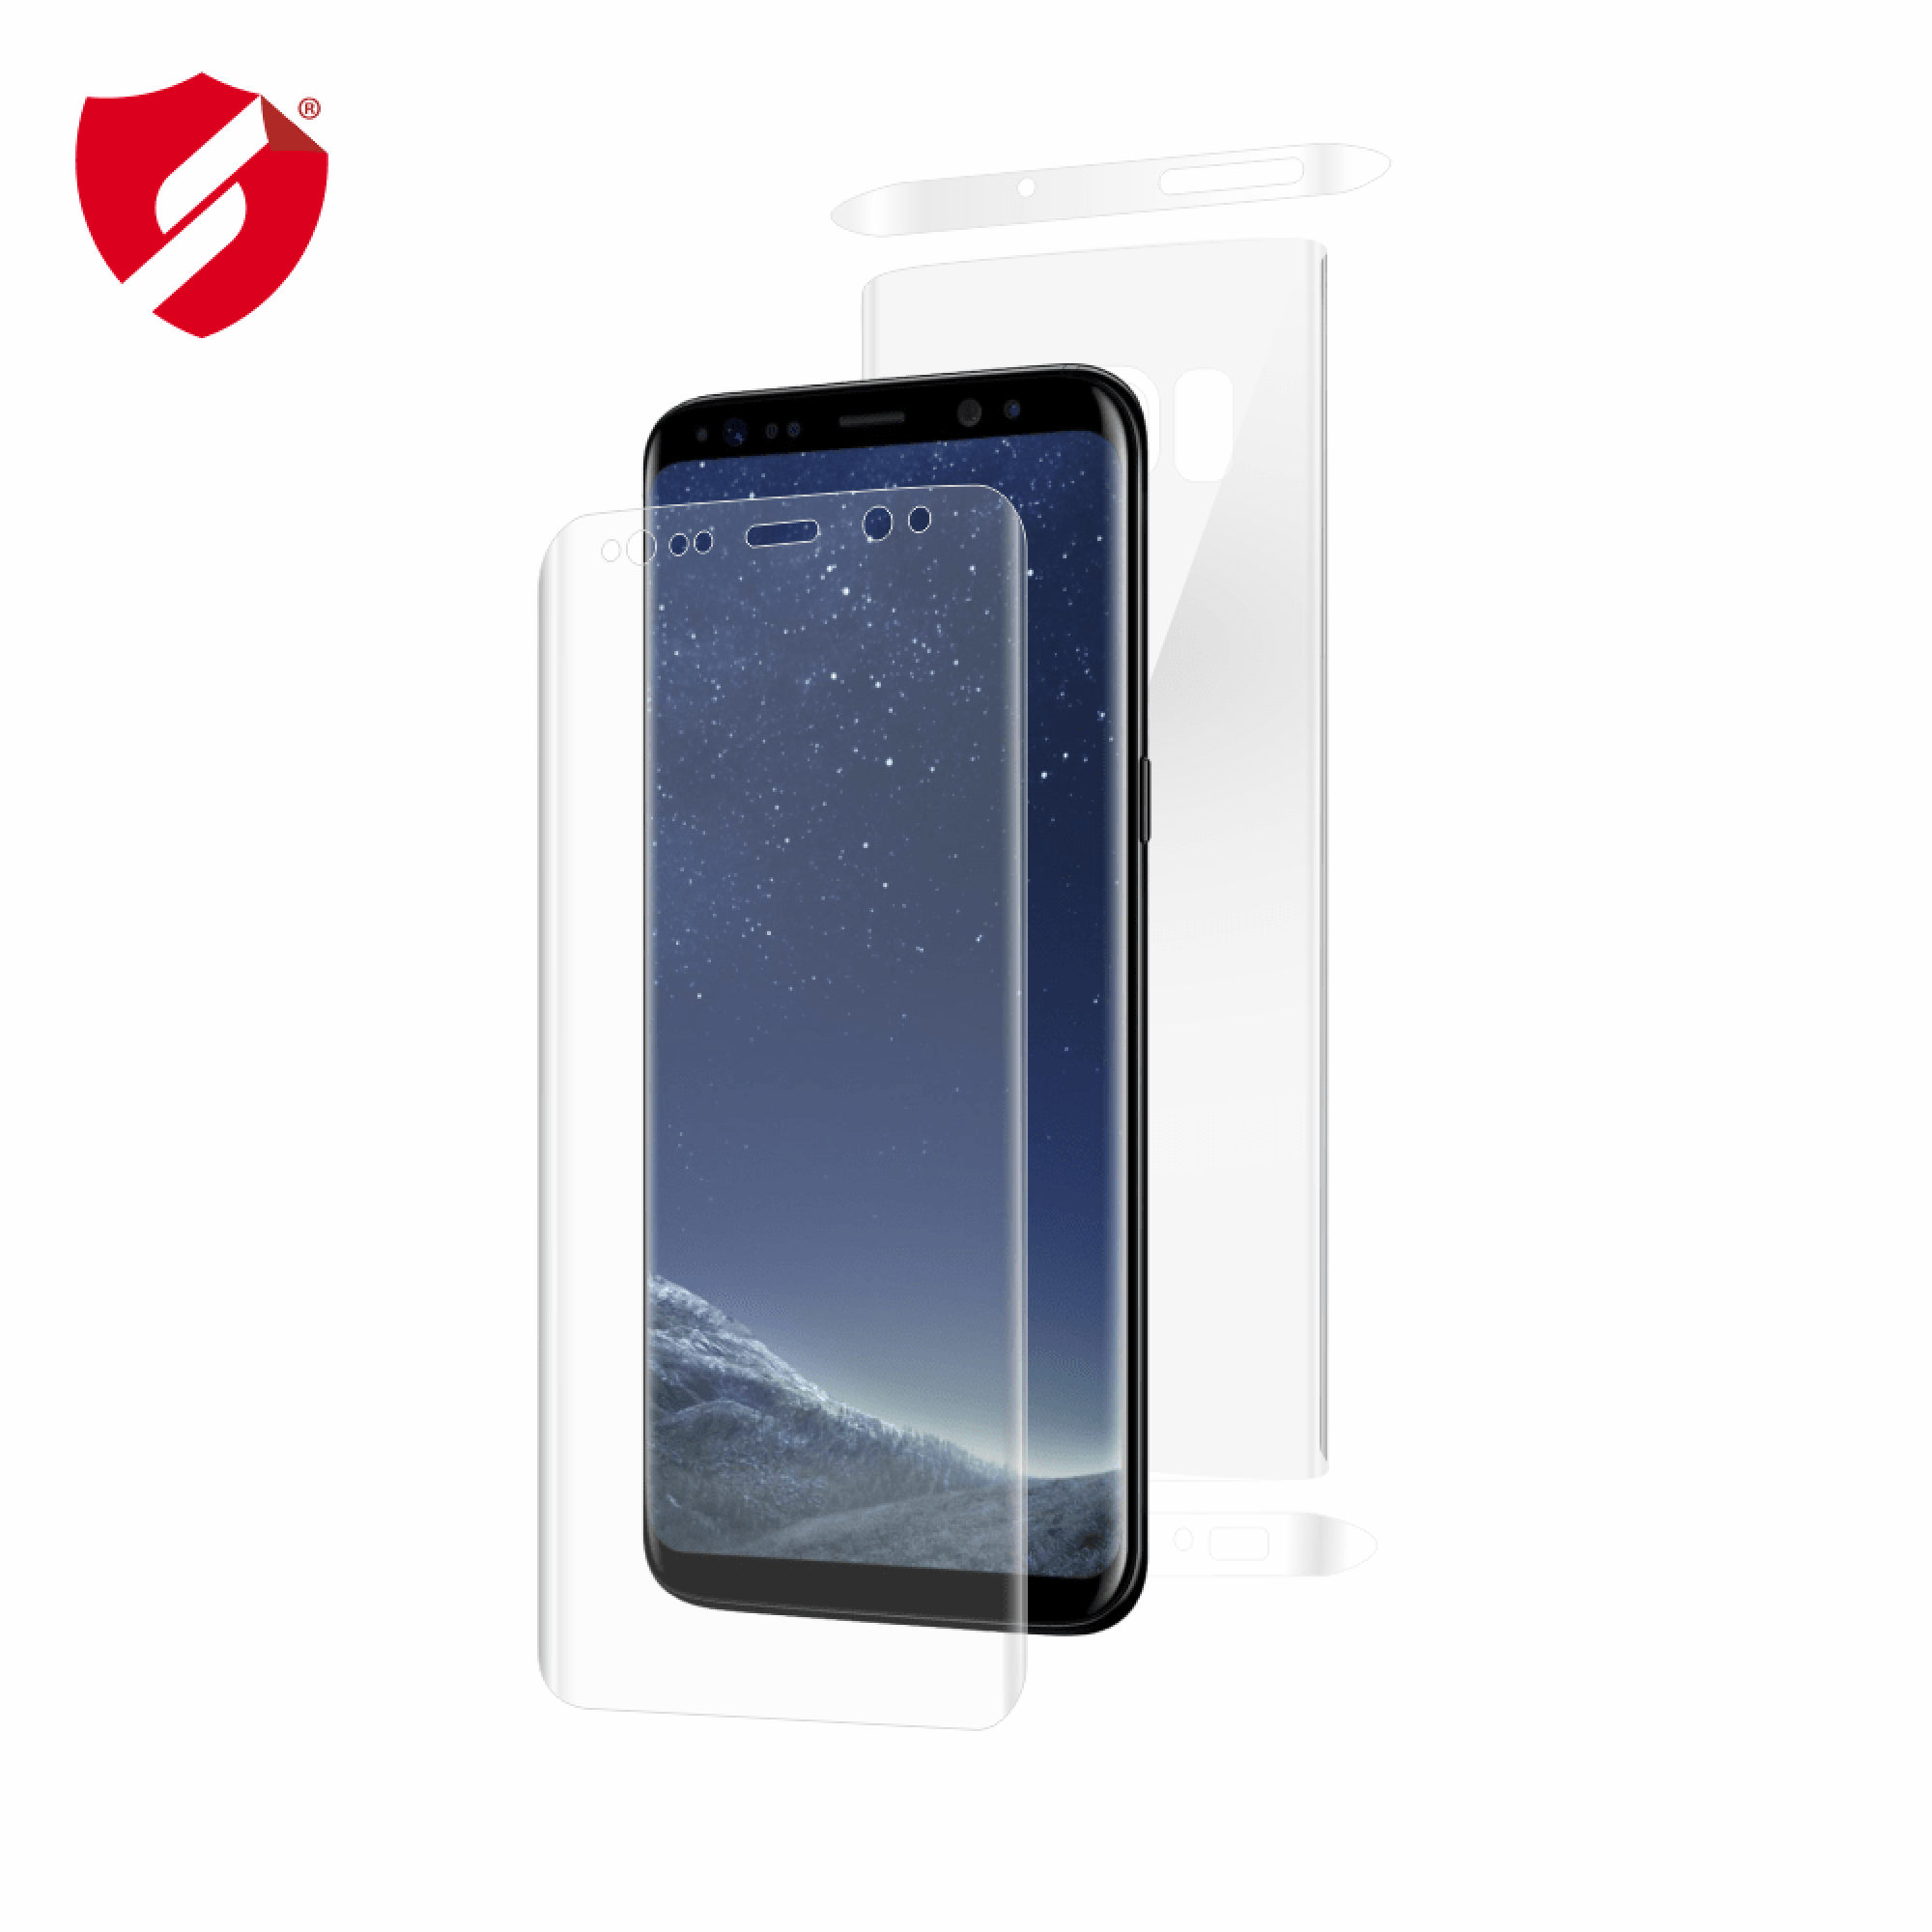 Folie de protectie Smart Protection Samsung Galaxy S8 - fullbody - display + spate + laterale imagine